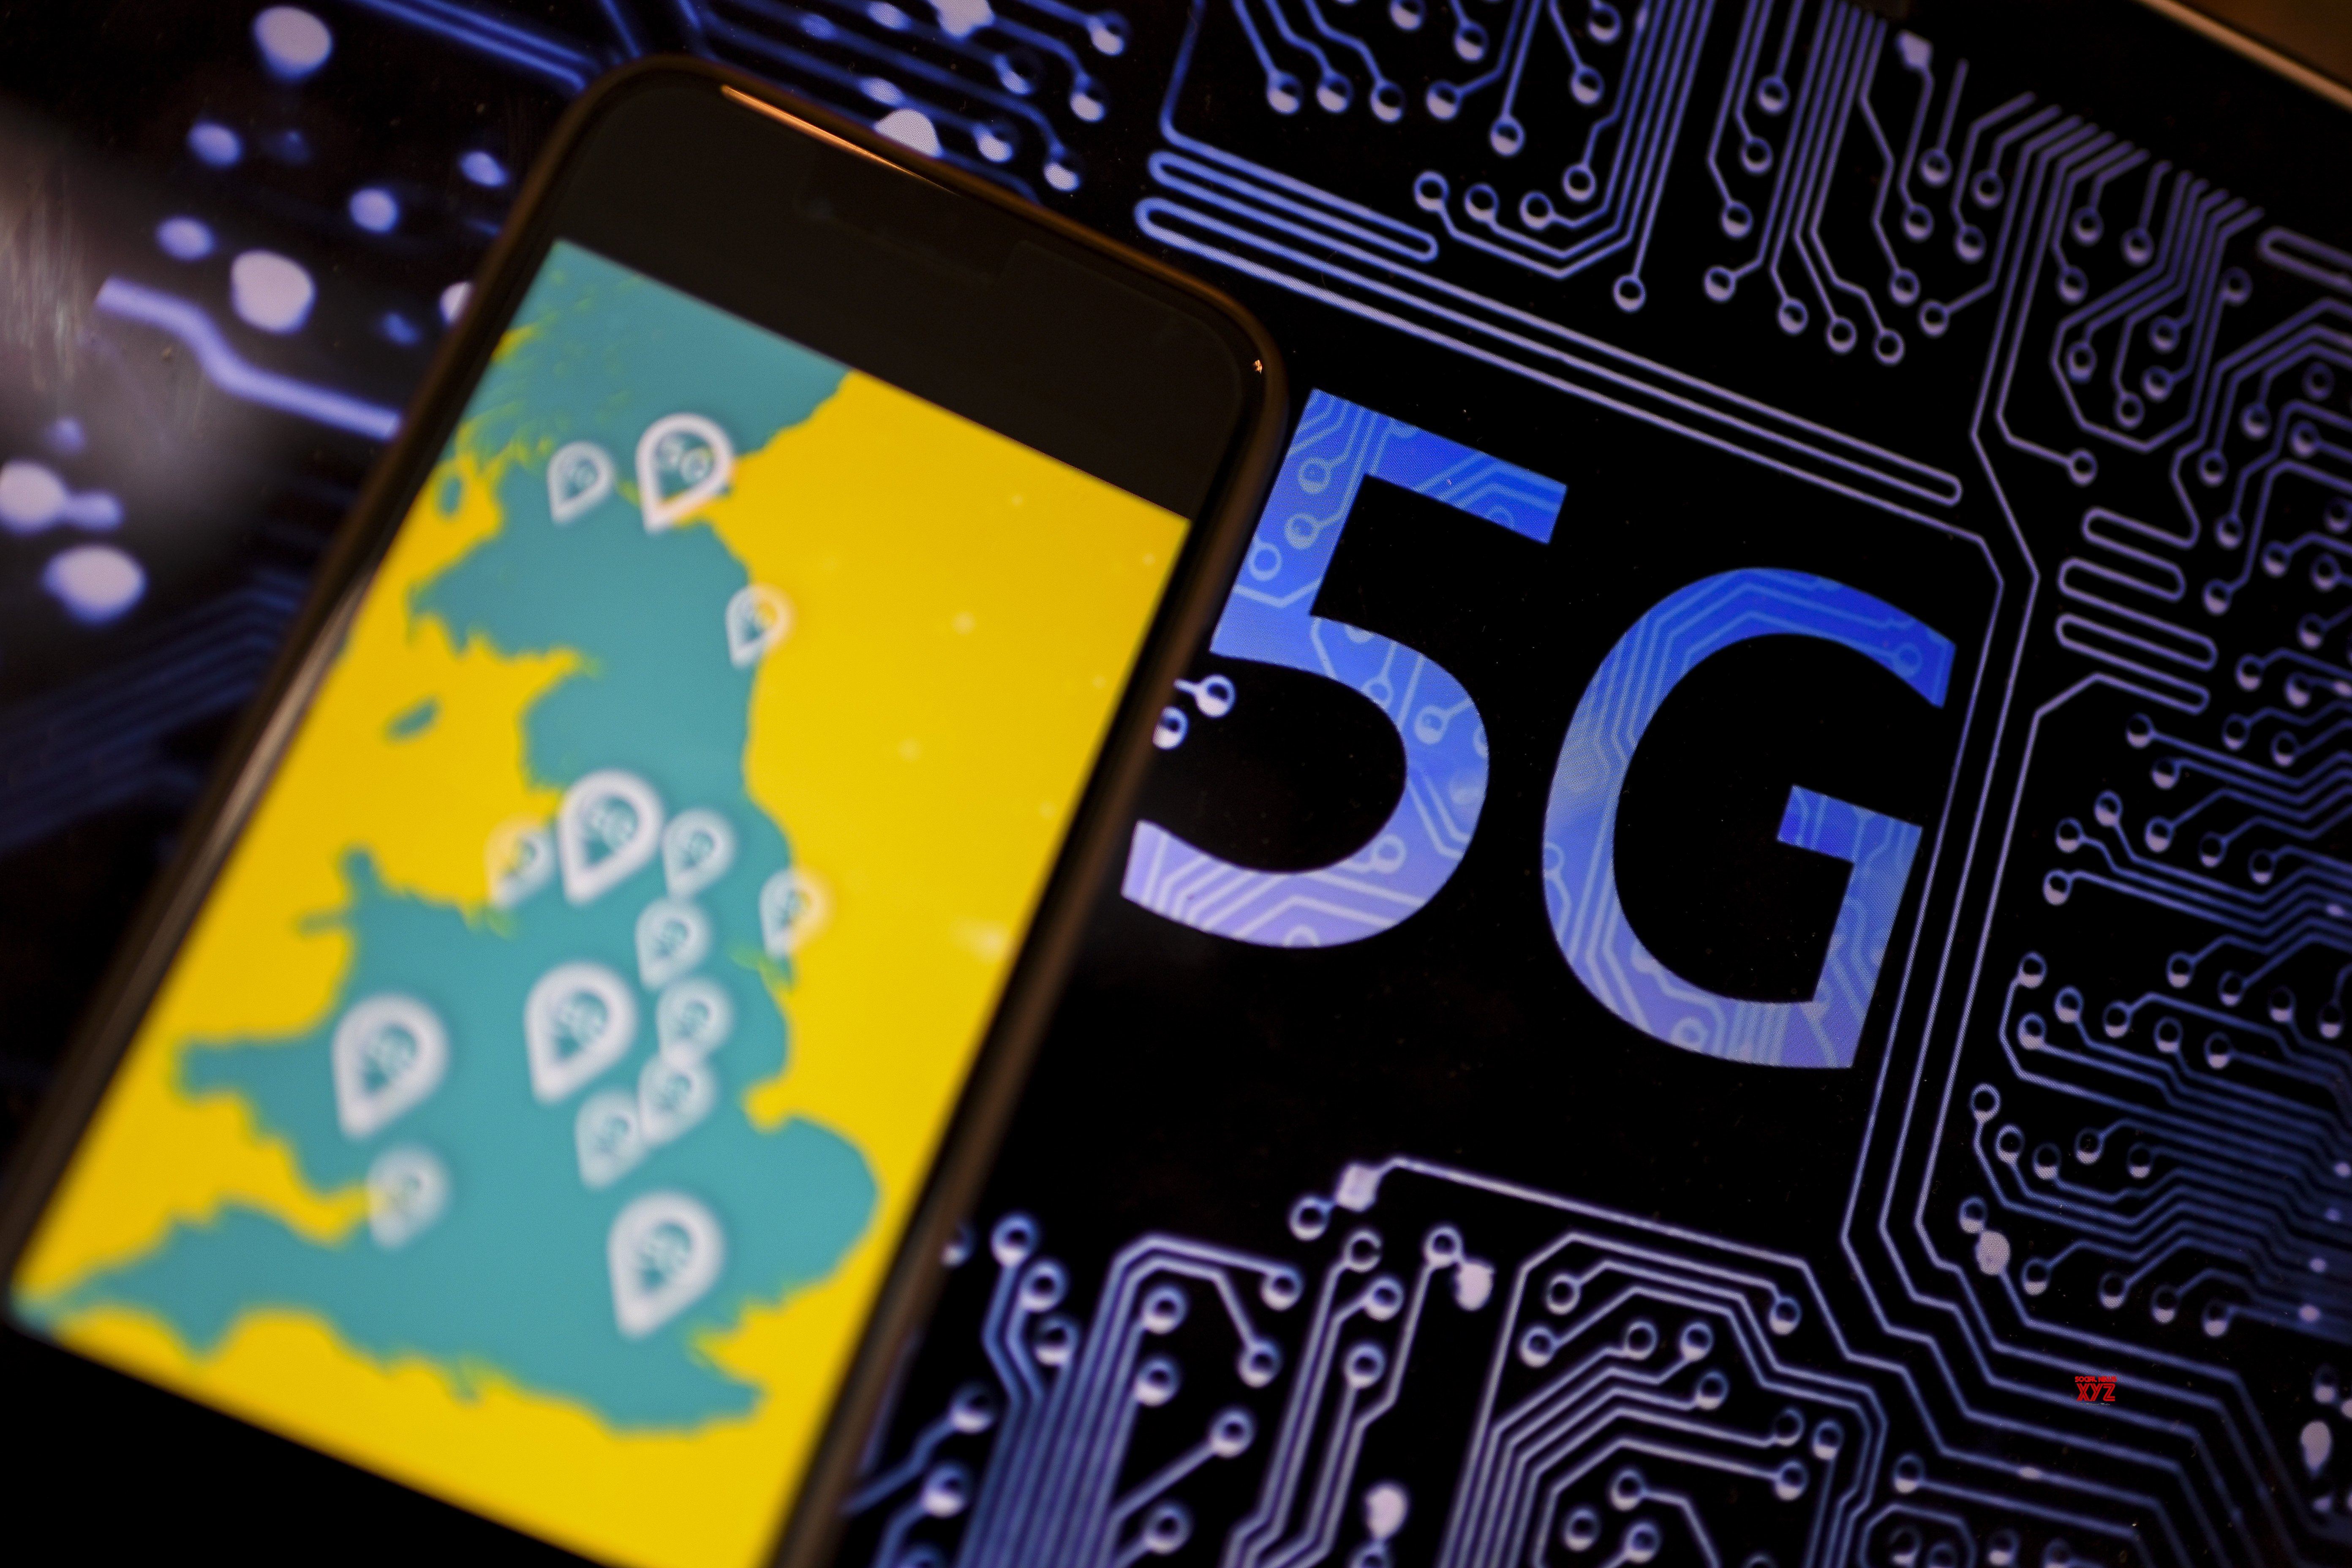 Dell unveils new telecom software, solutions to boost 5G in India